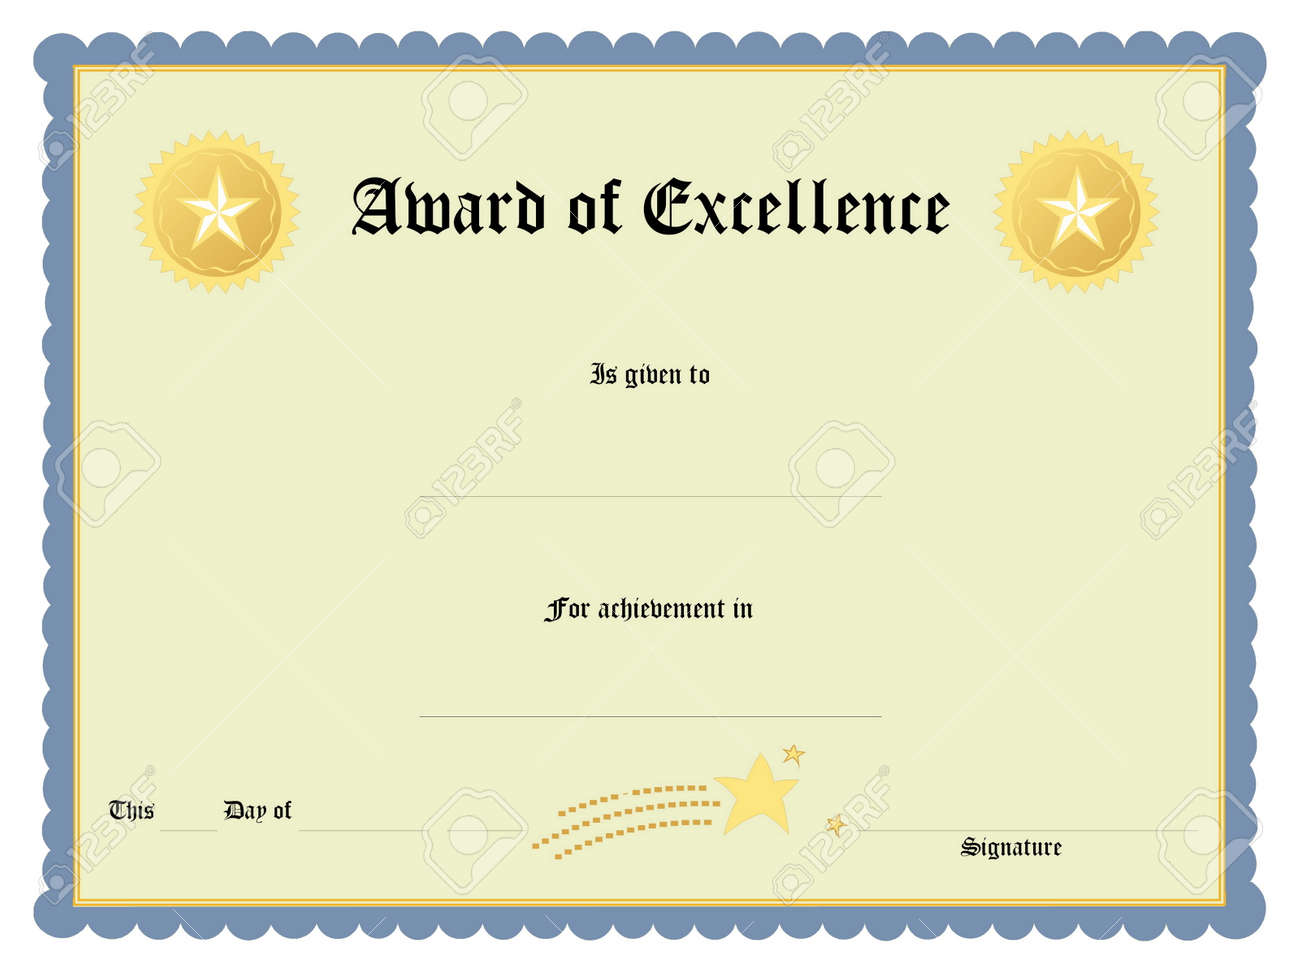 blank award certificate form stock photo picture and royalty free